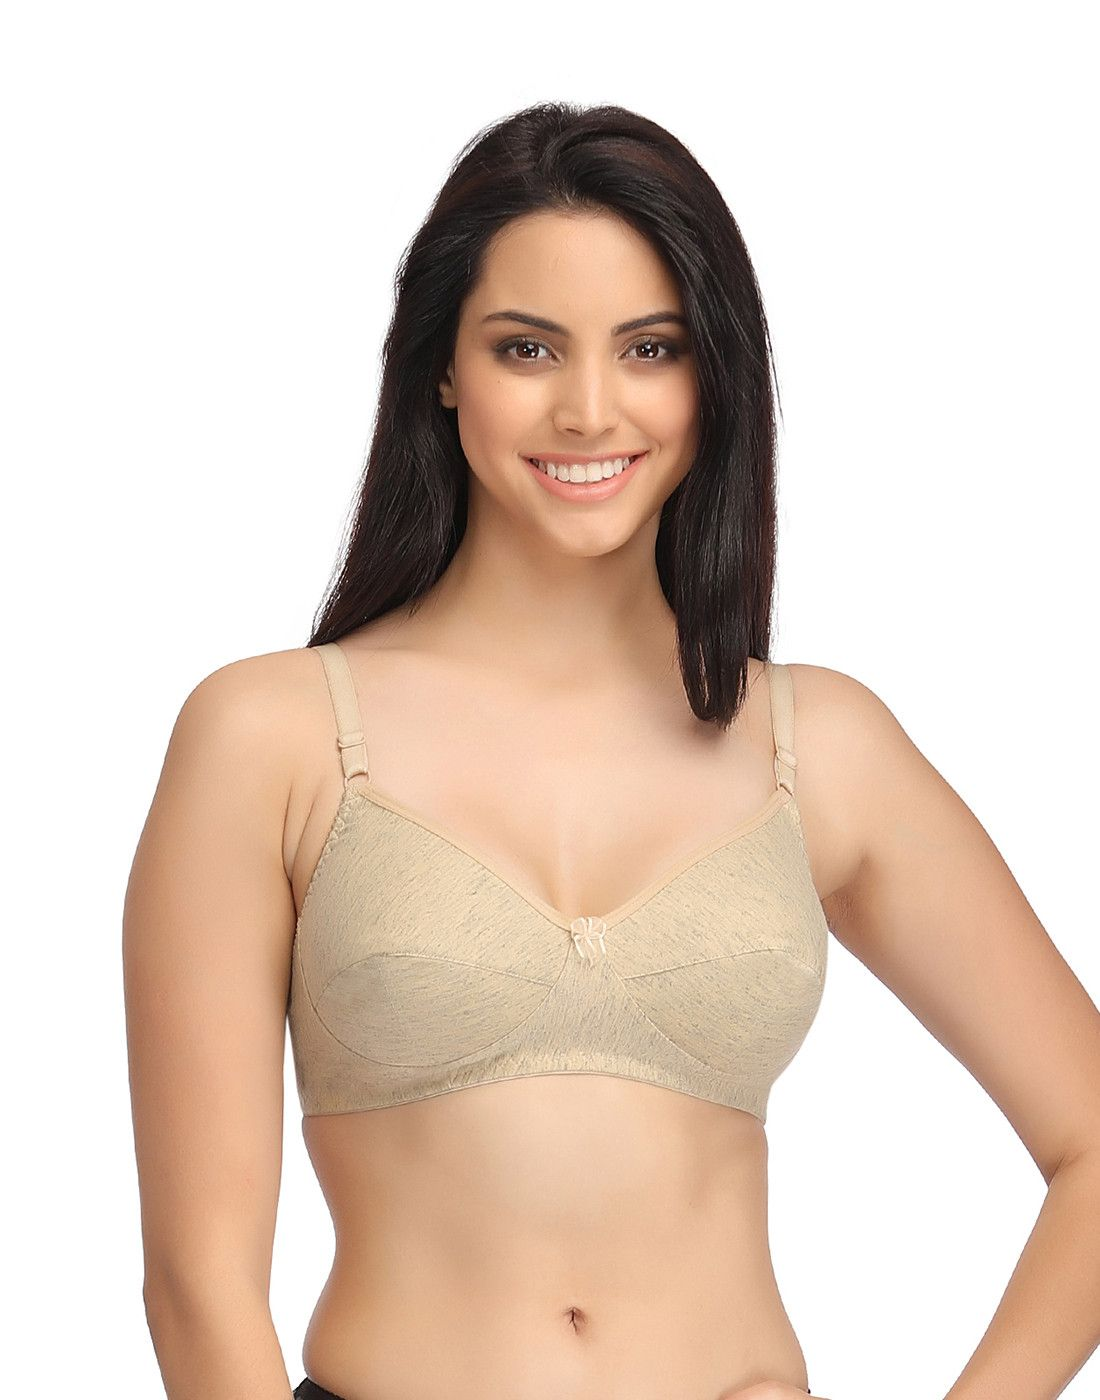 d996d243d34d7 Yükle (1100x1400)Buy Cotton Non-Padded Non-Wired Full Cup Bra - Beige  Online India